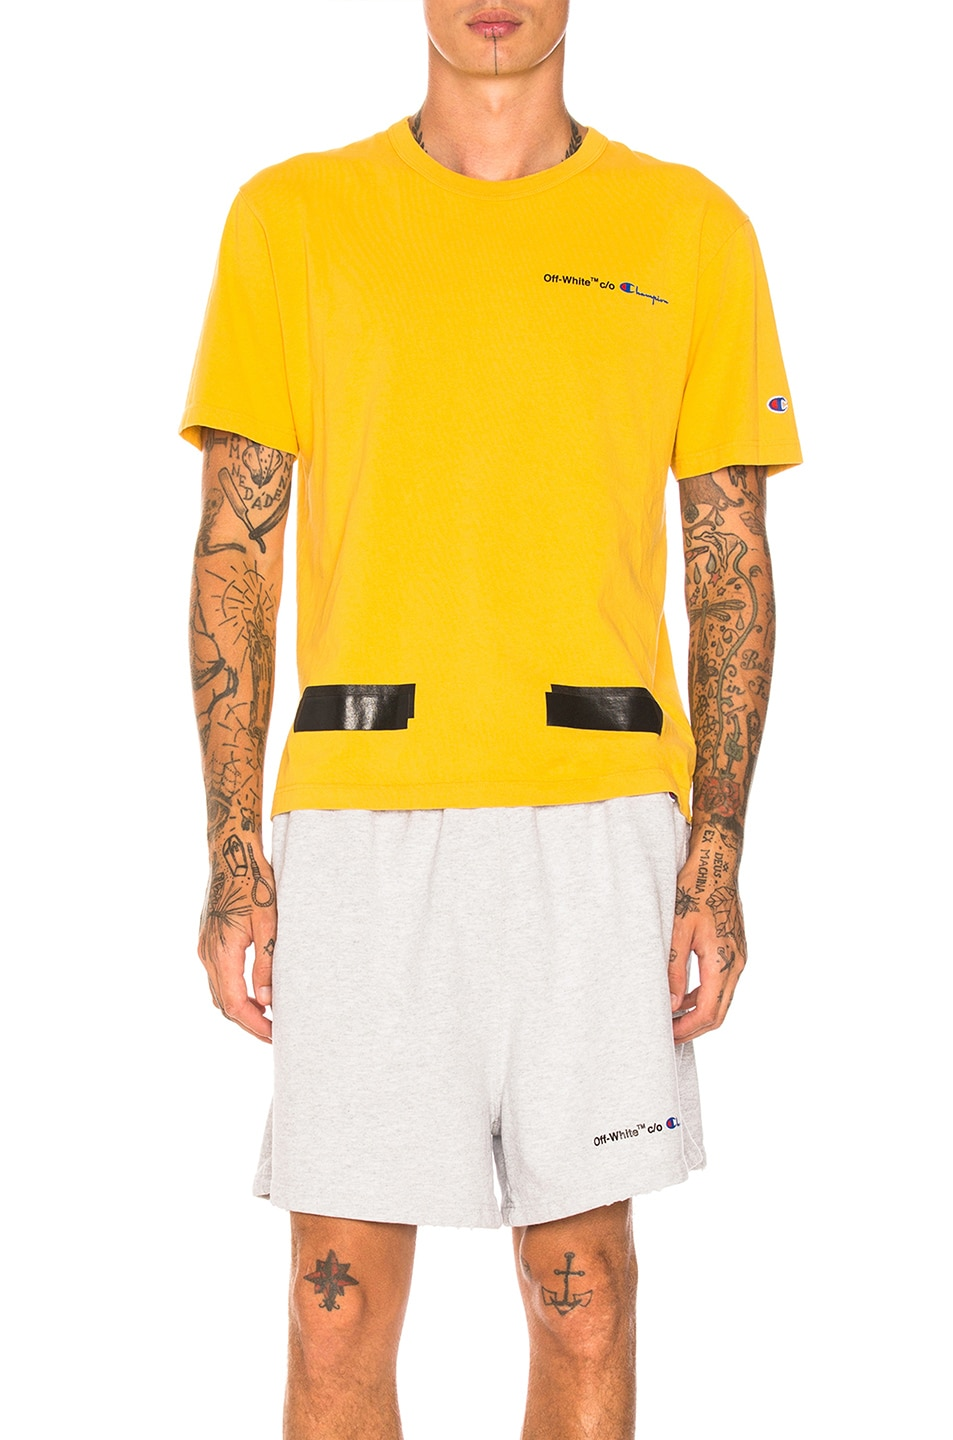 6cae6d3c Image 1 of OFF-WHITE Champion Tee in Yellow